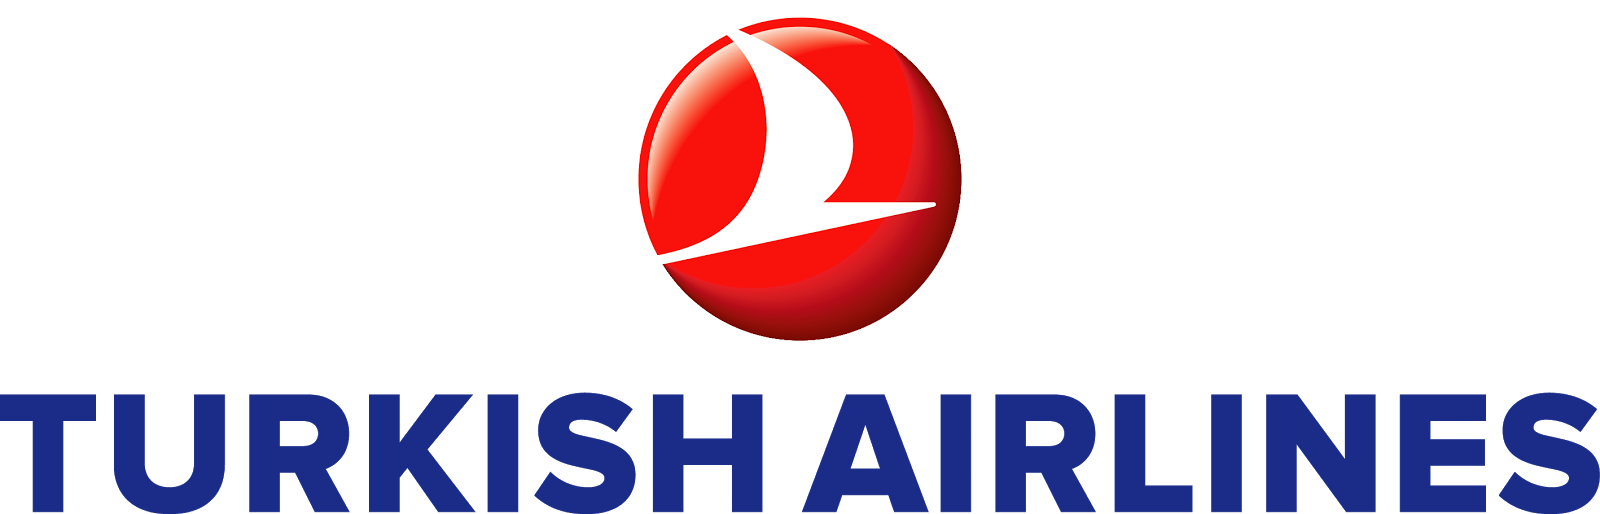 all turkish airlines logos png #2541